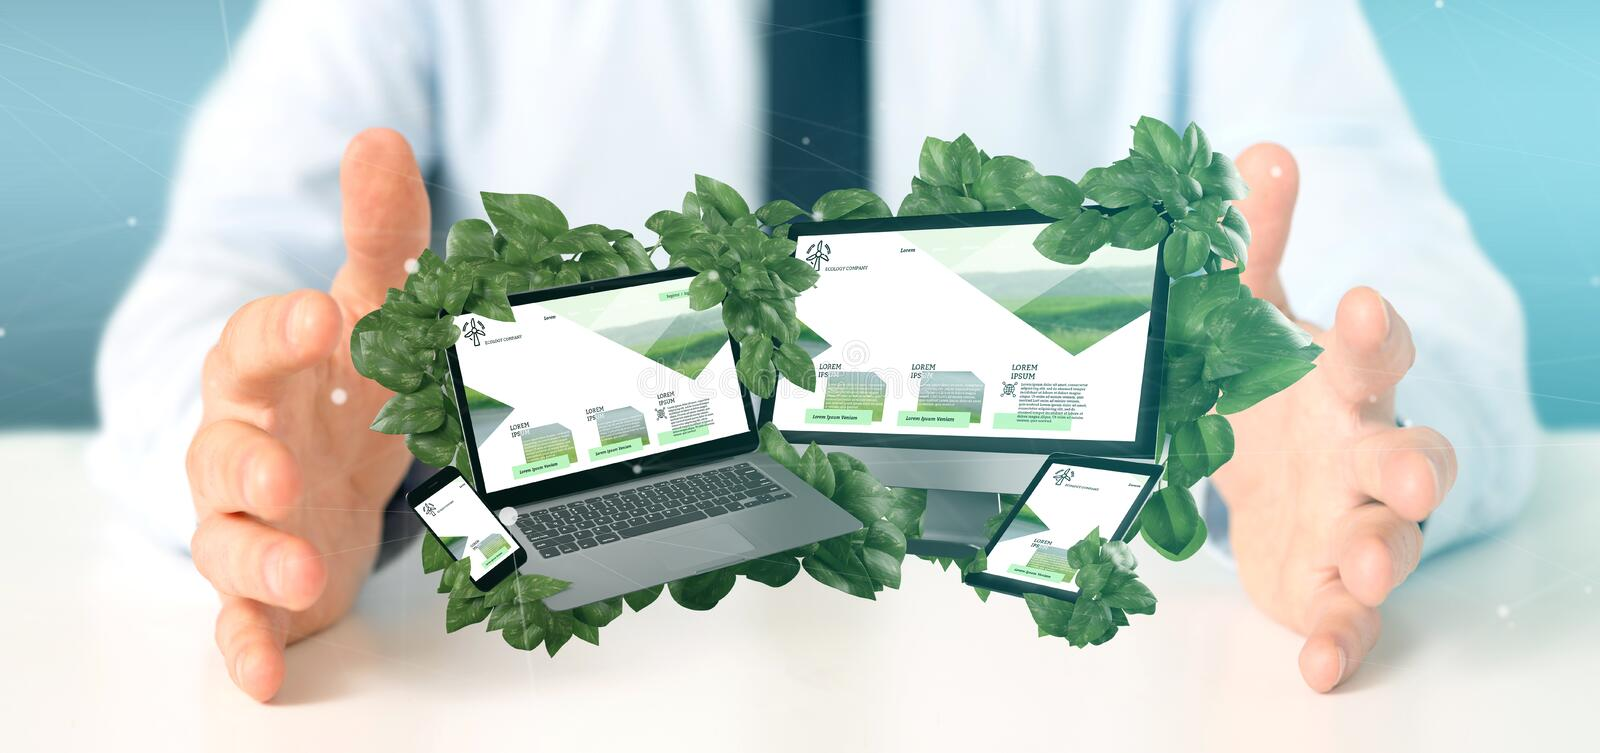 Businessman holding a Connected devices surrounding by leaves 3d rendering. View of a Businessman holding connected devices surrounding by leaves 3d rendering royalty free stock photos